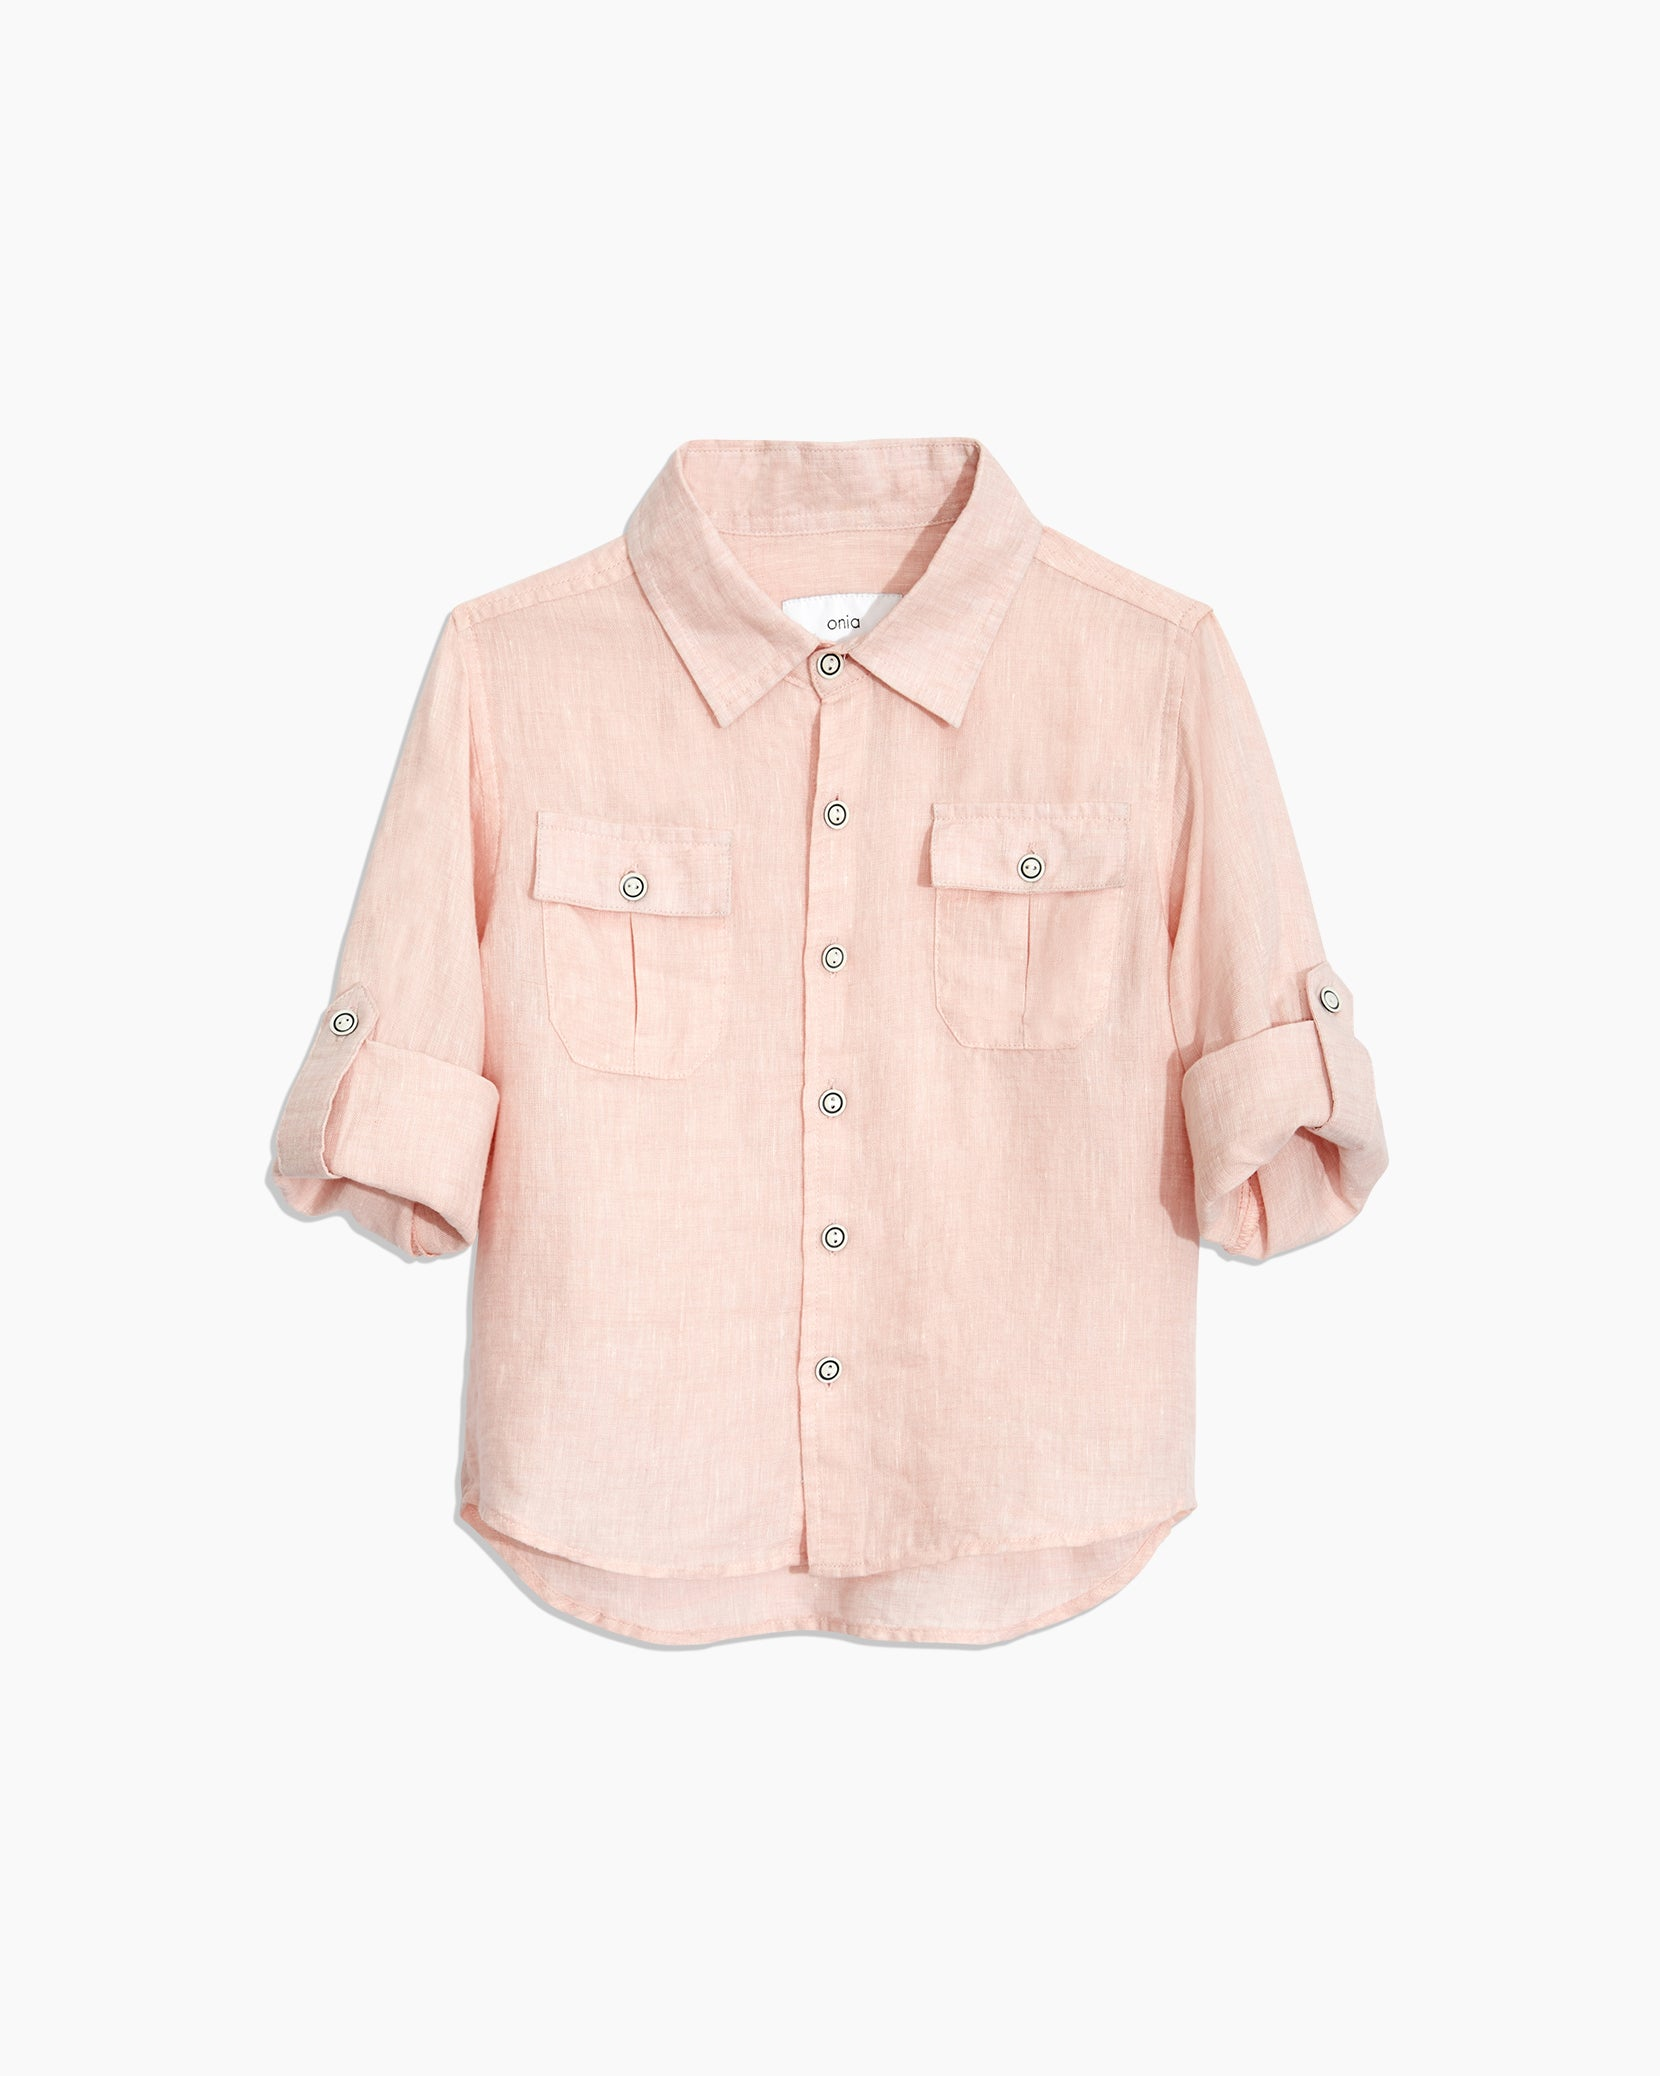 Boys Linen Garret Shirt in Petal - 11 - Onia